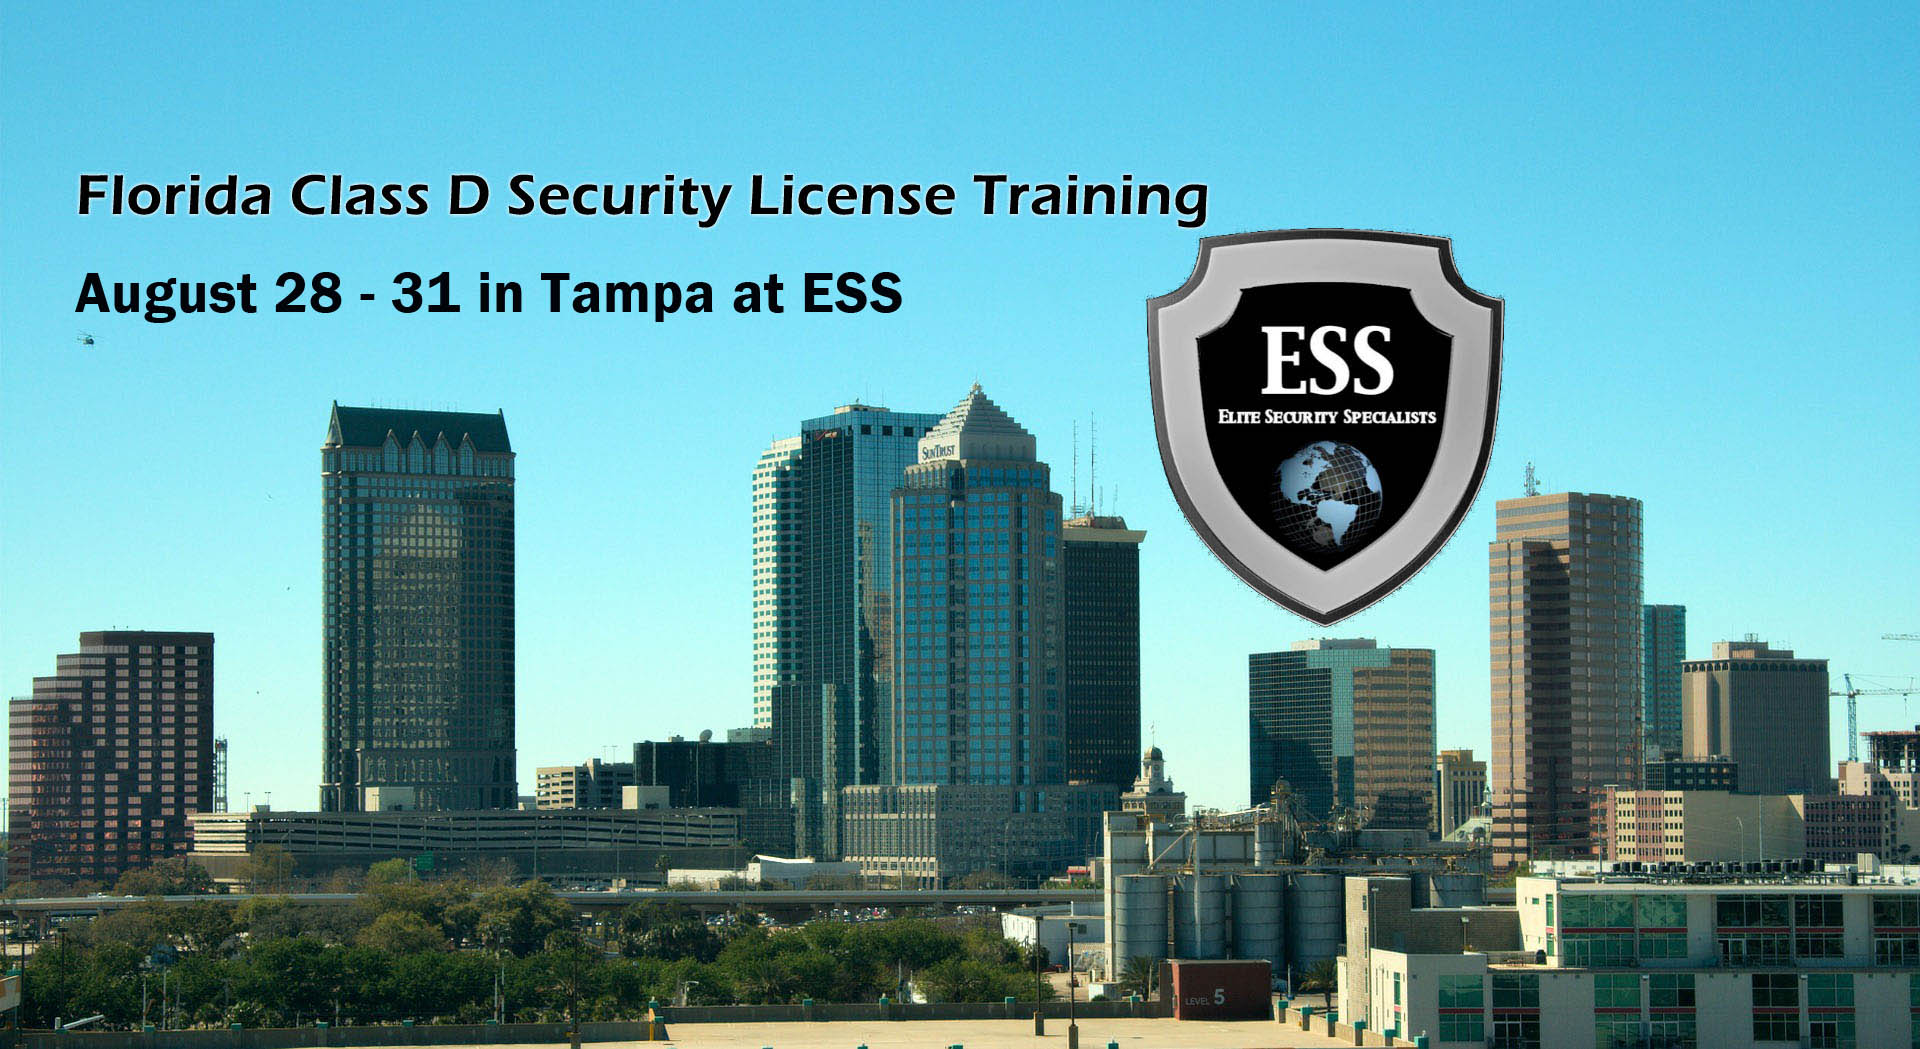 Florida Class D Security License Class in Tampa August